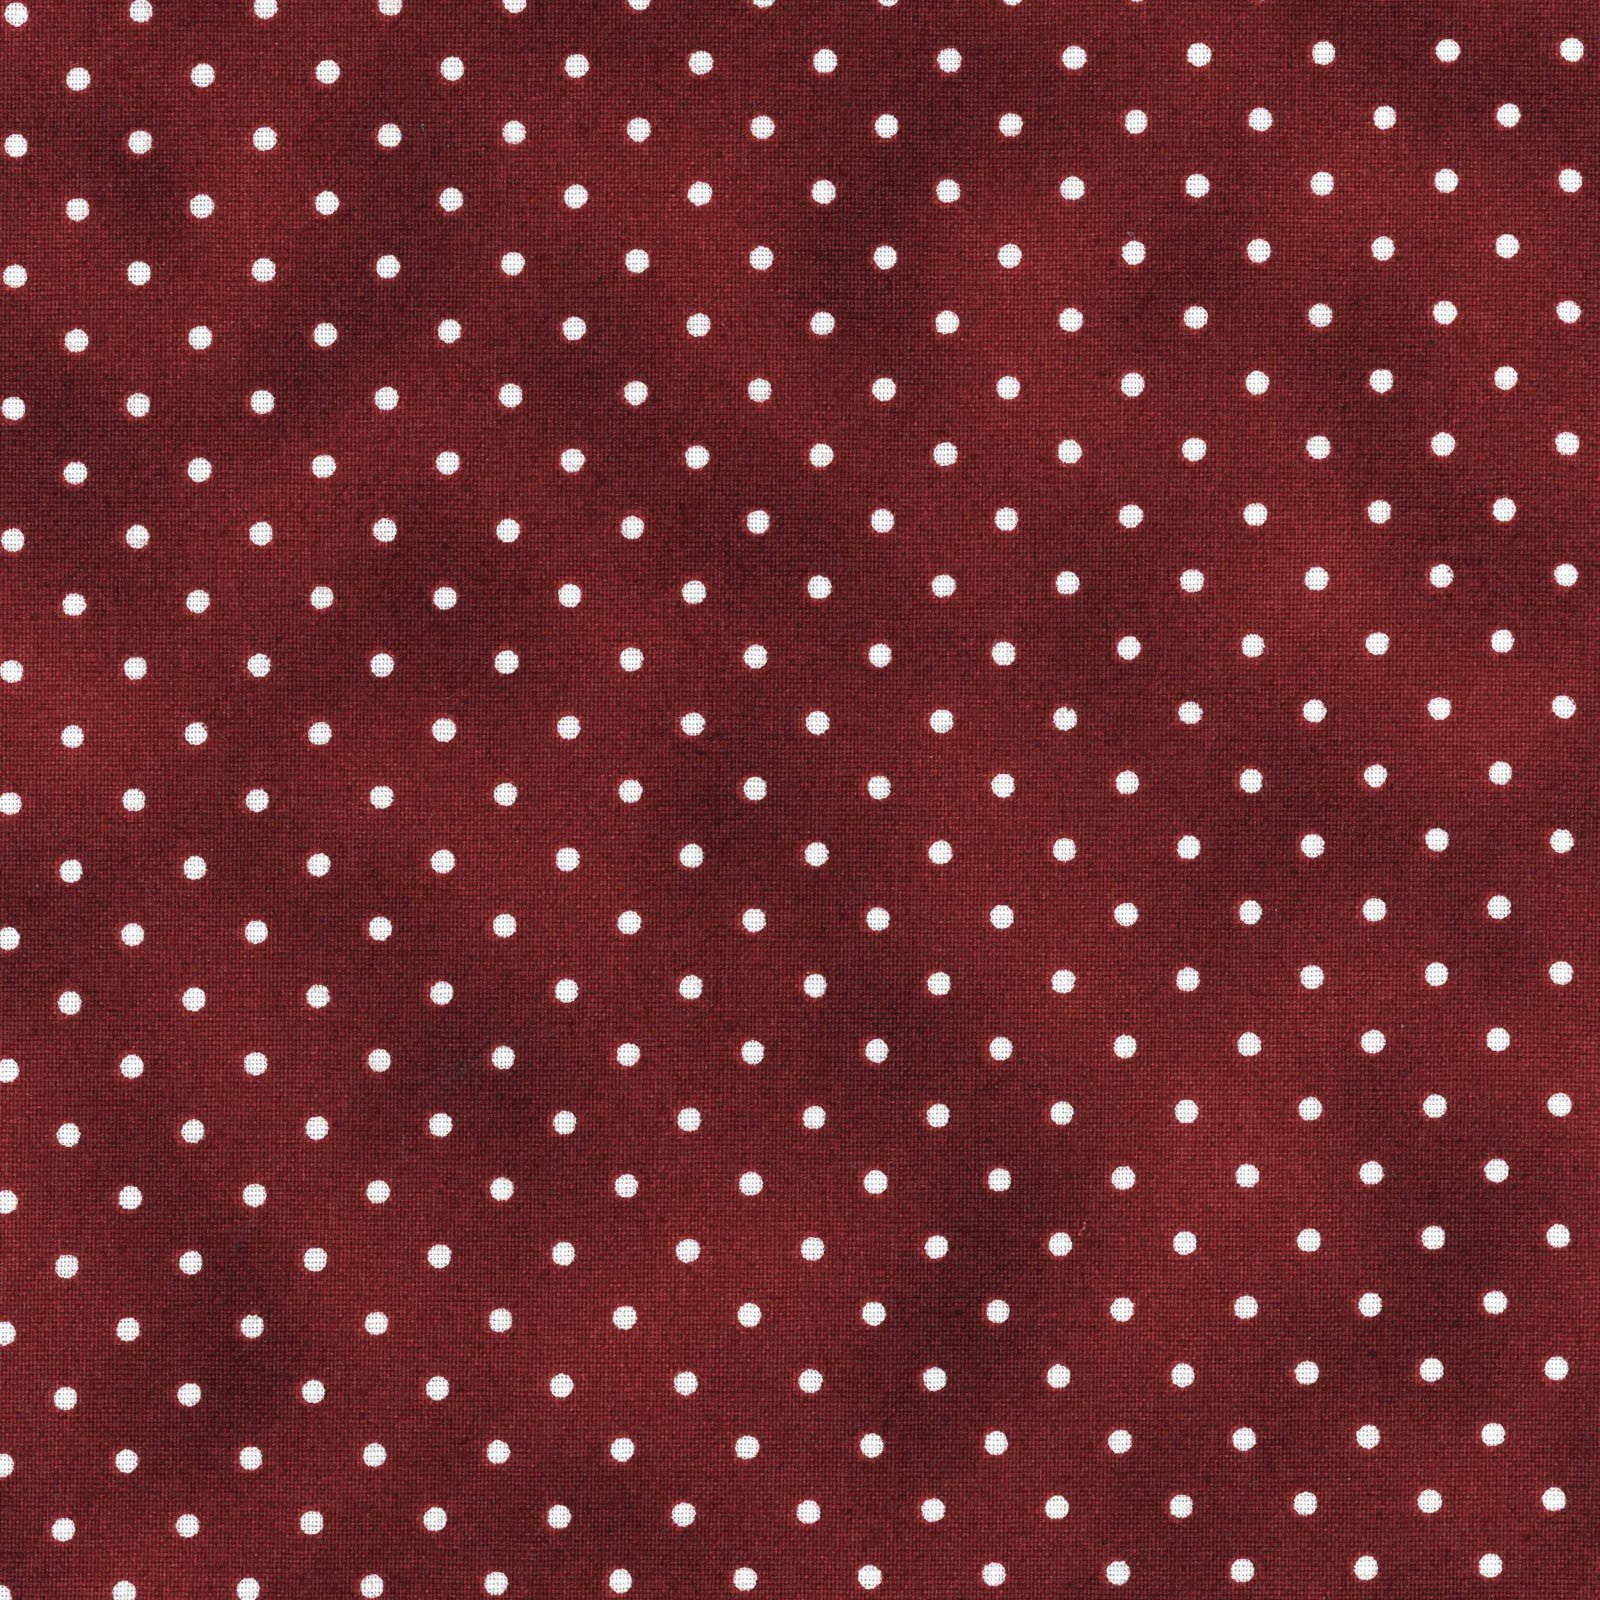 Pin Dots - Deep Red<br/>Maywood Studio 609-R2